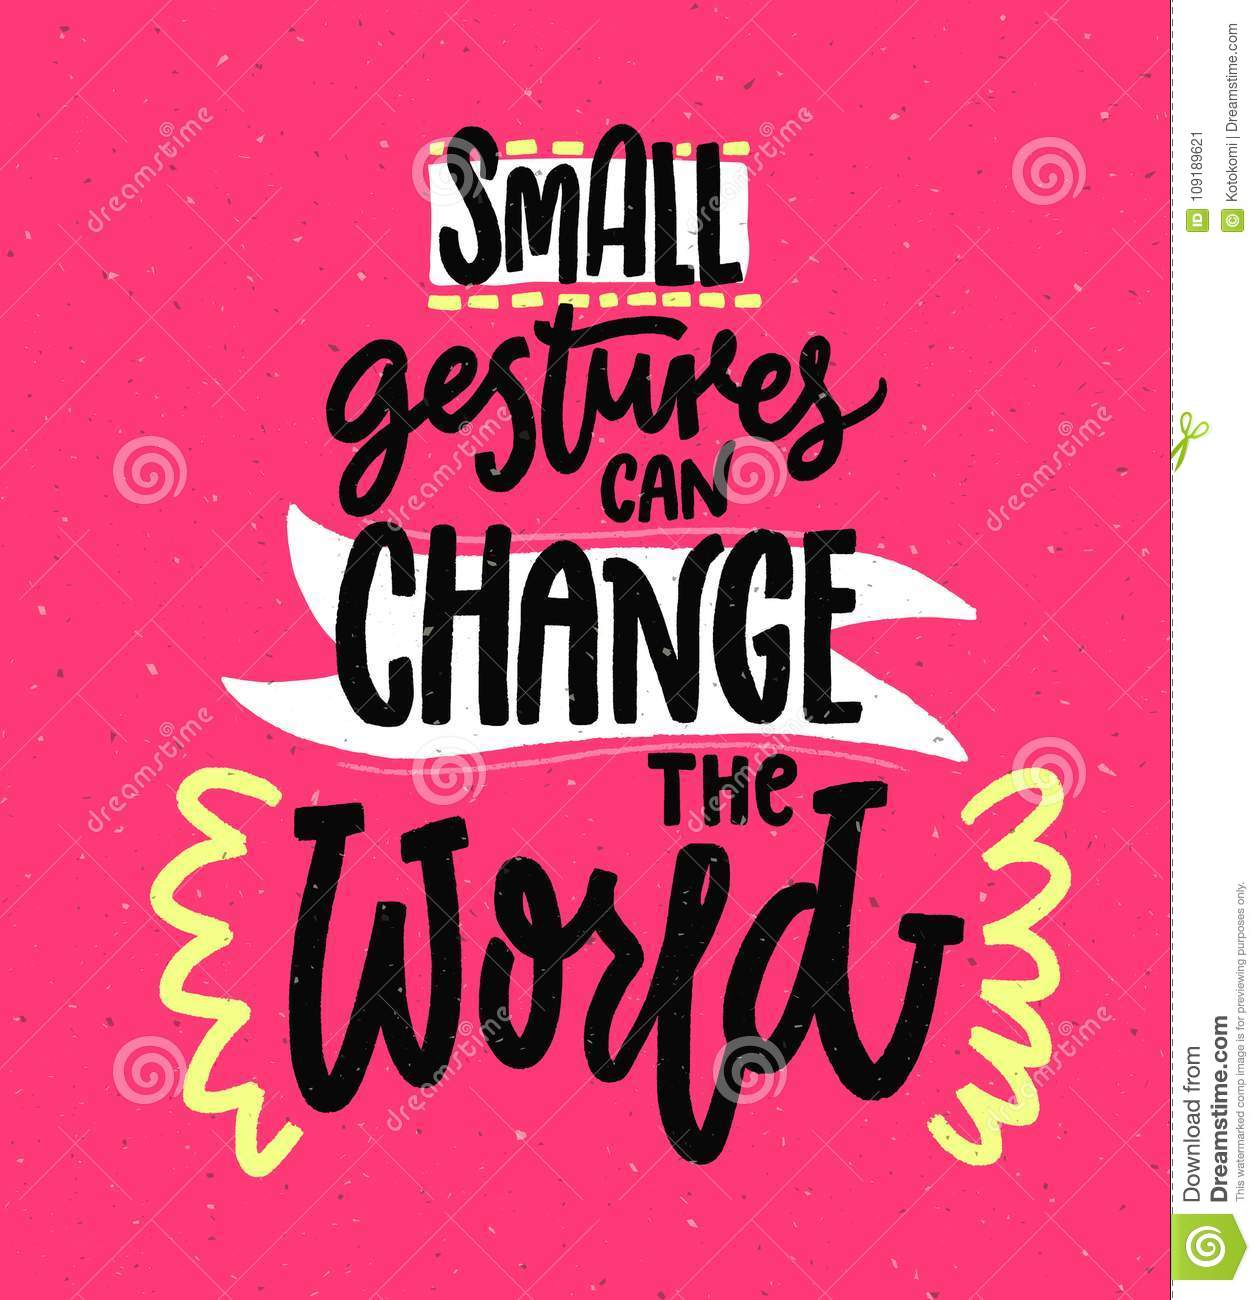 small gestures can change the world motivational quote about